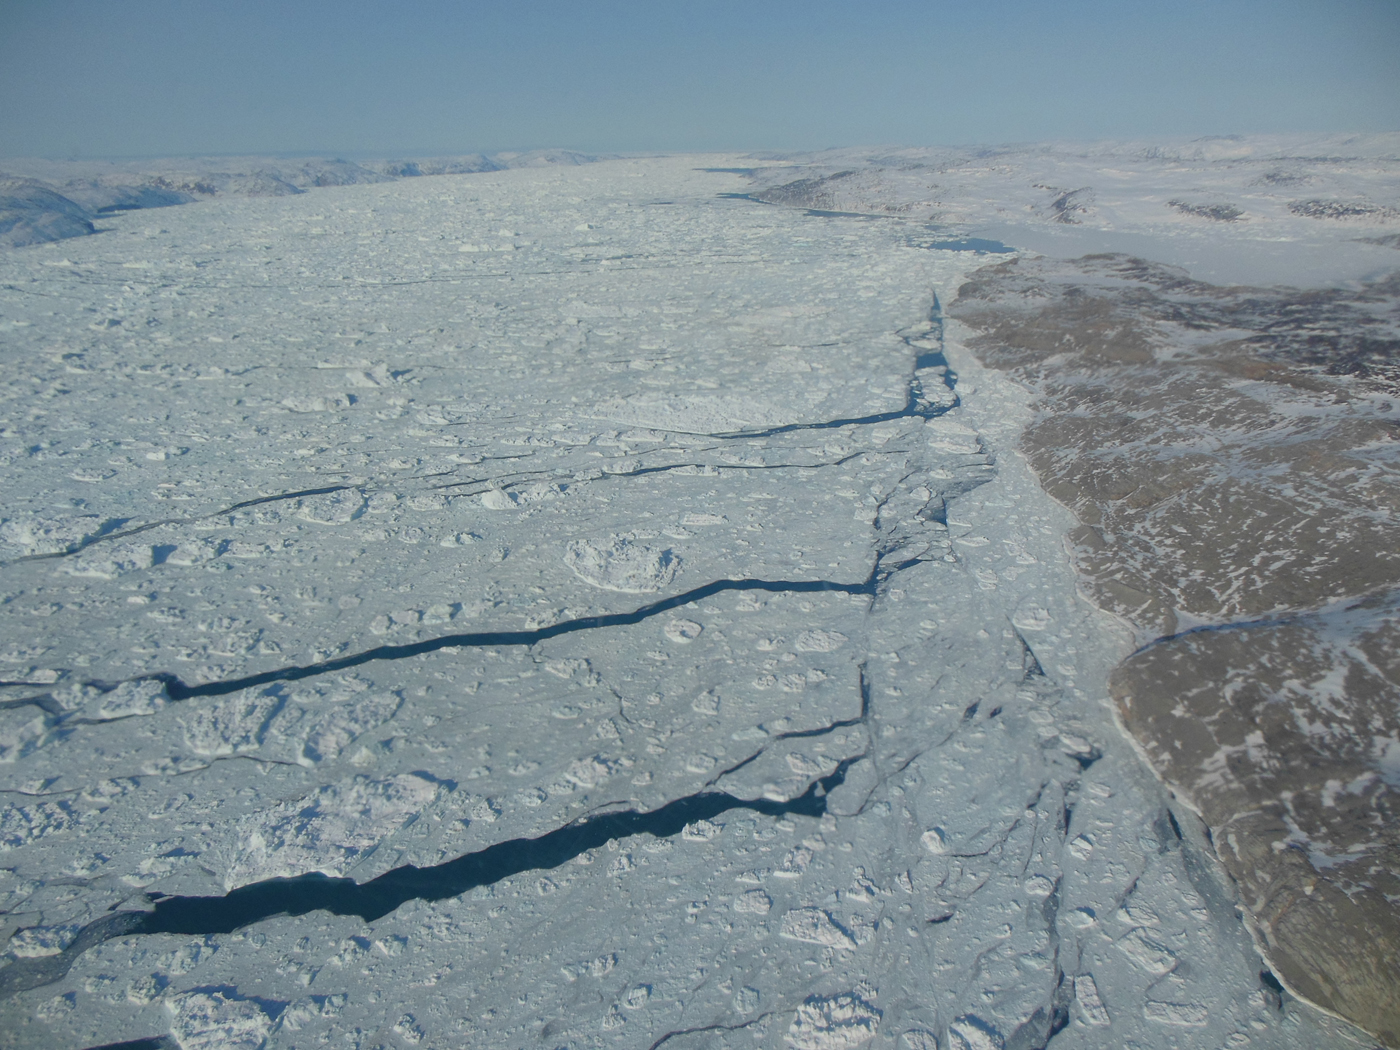 A view of sea ice with open leads of water.